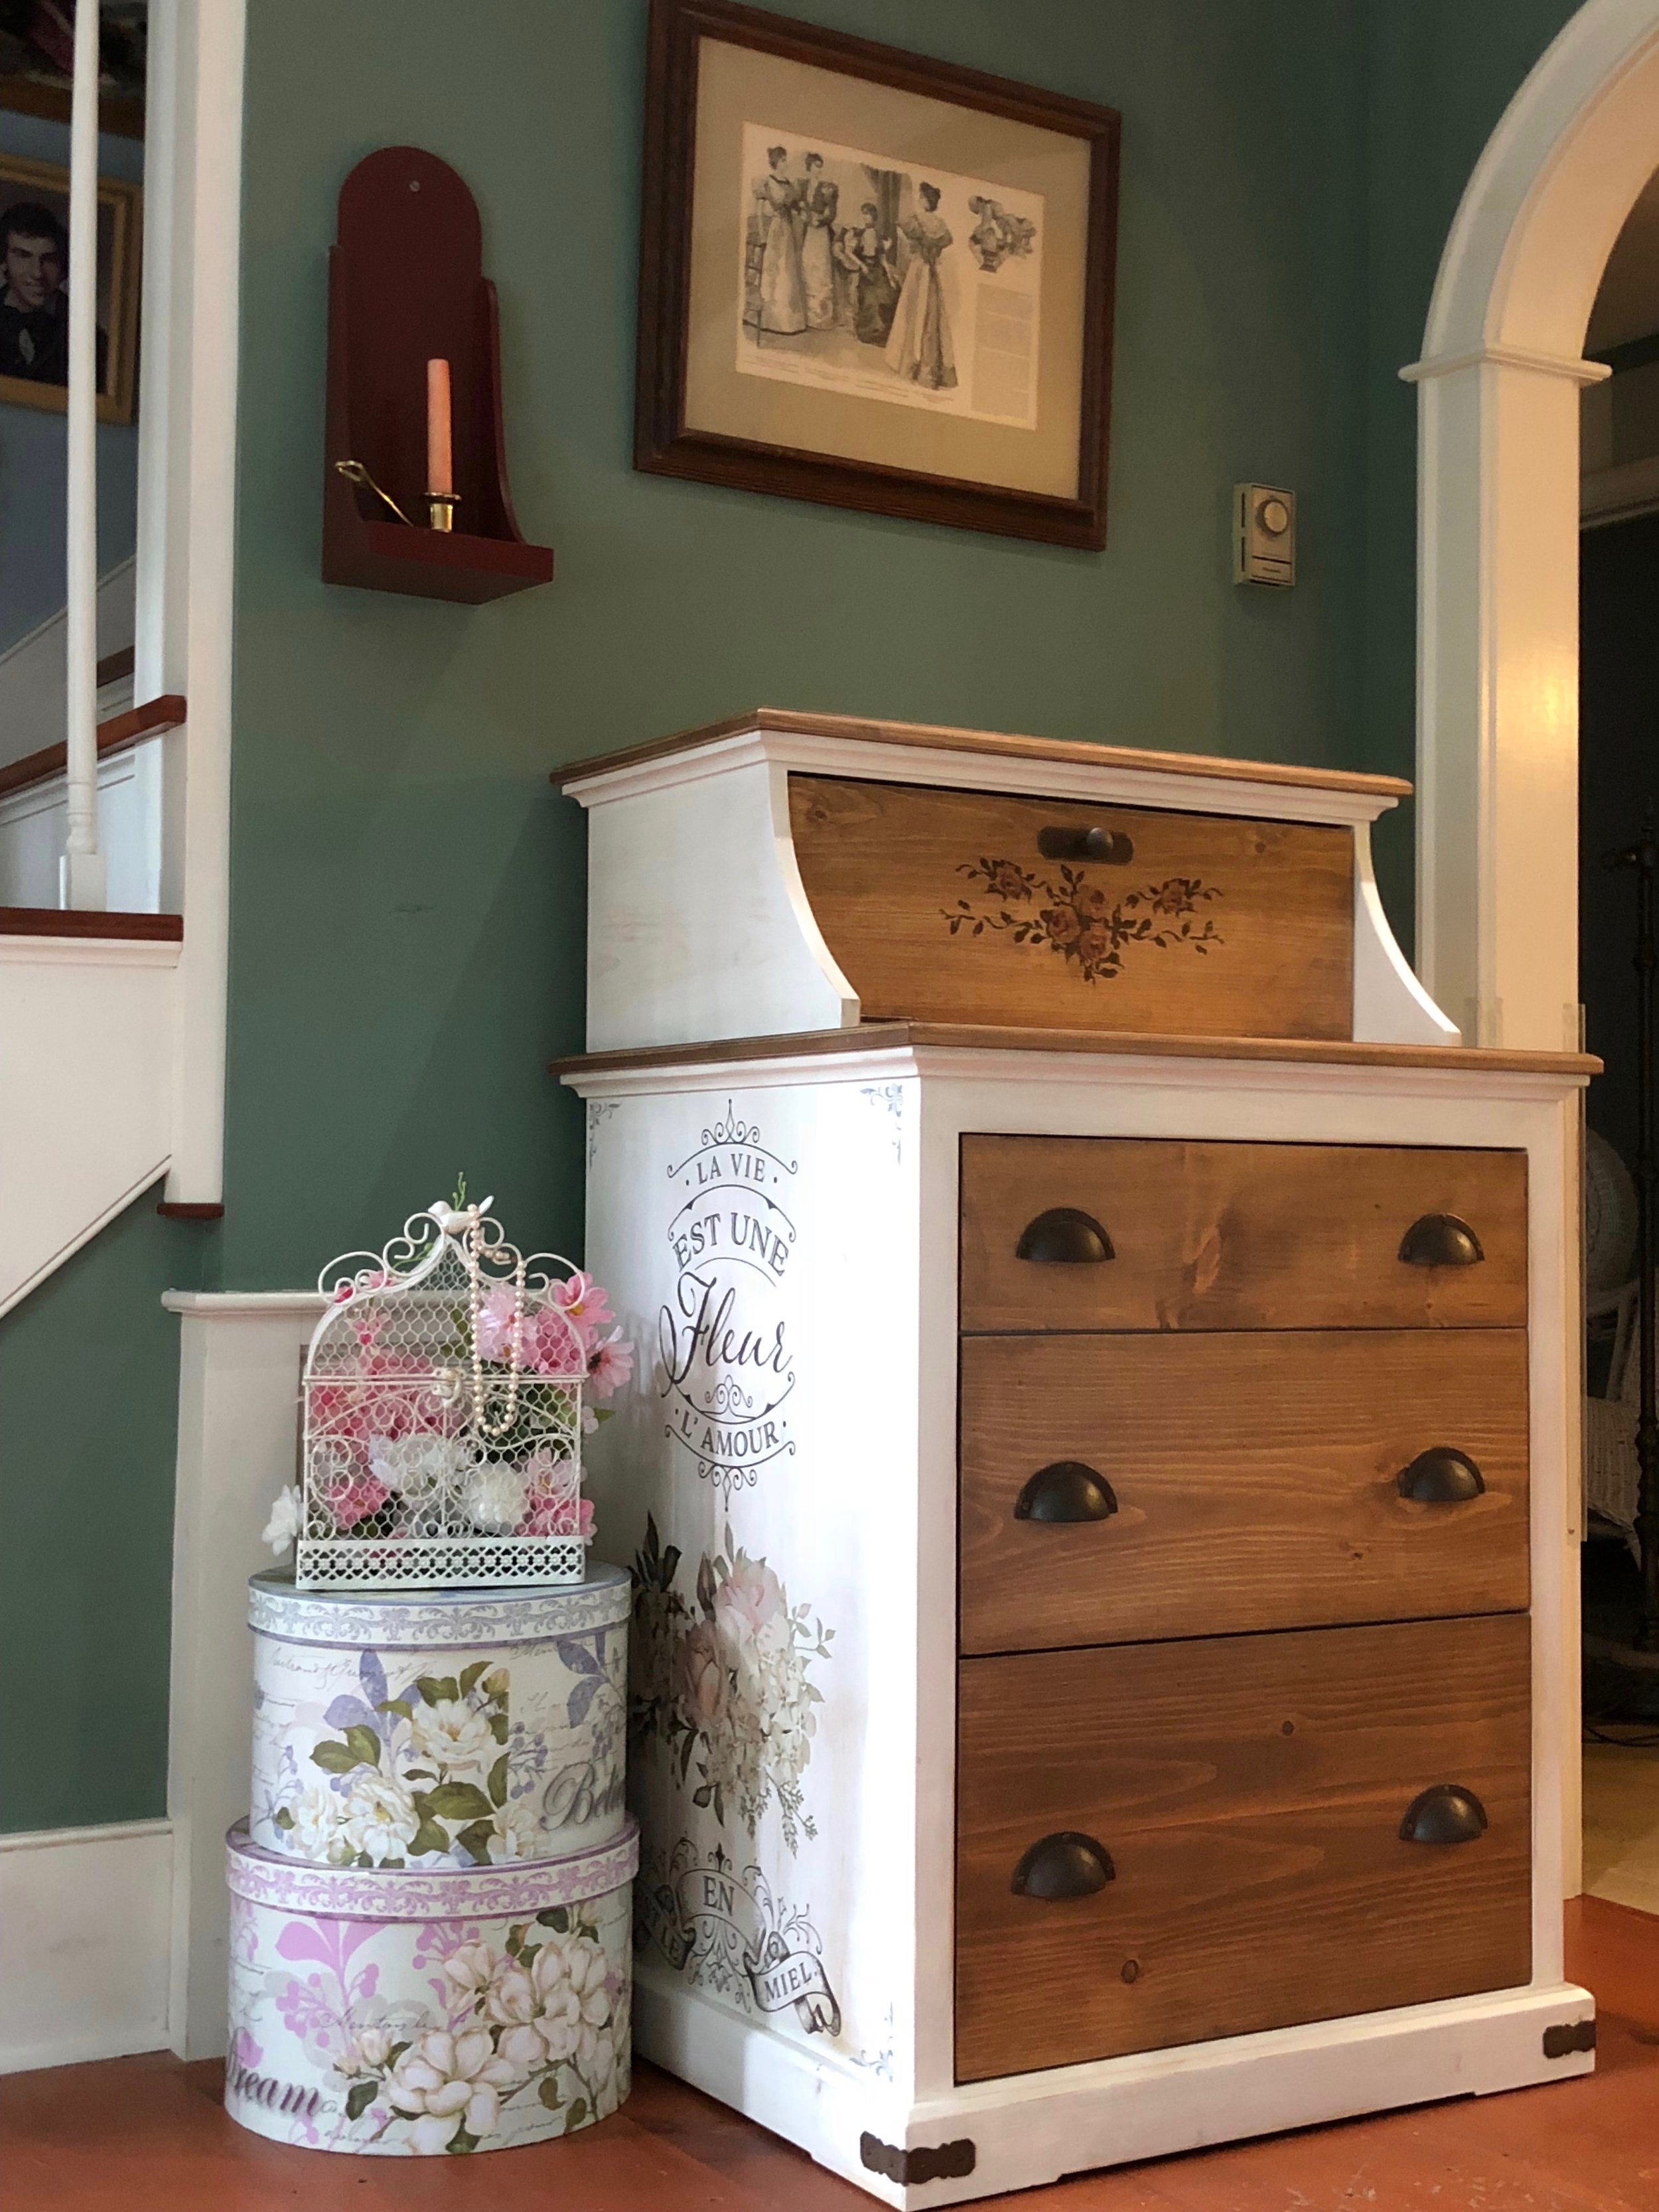 Vintage Storage Dresser with Rusted Iron Hardware and Crackle Finish 1.jpg